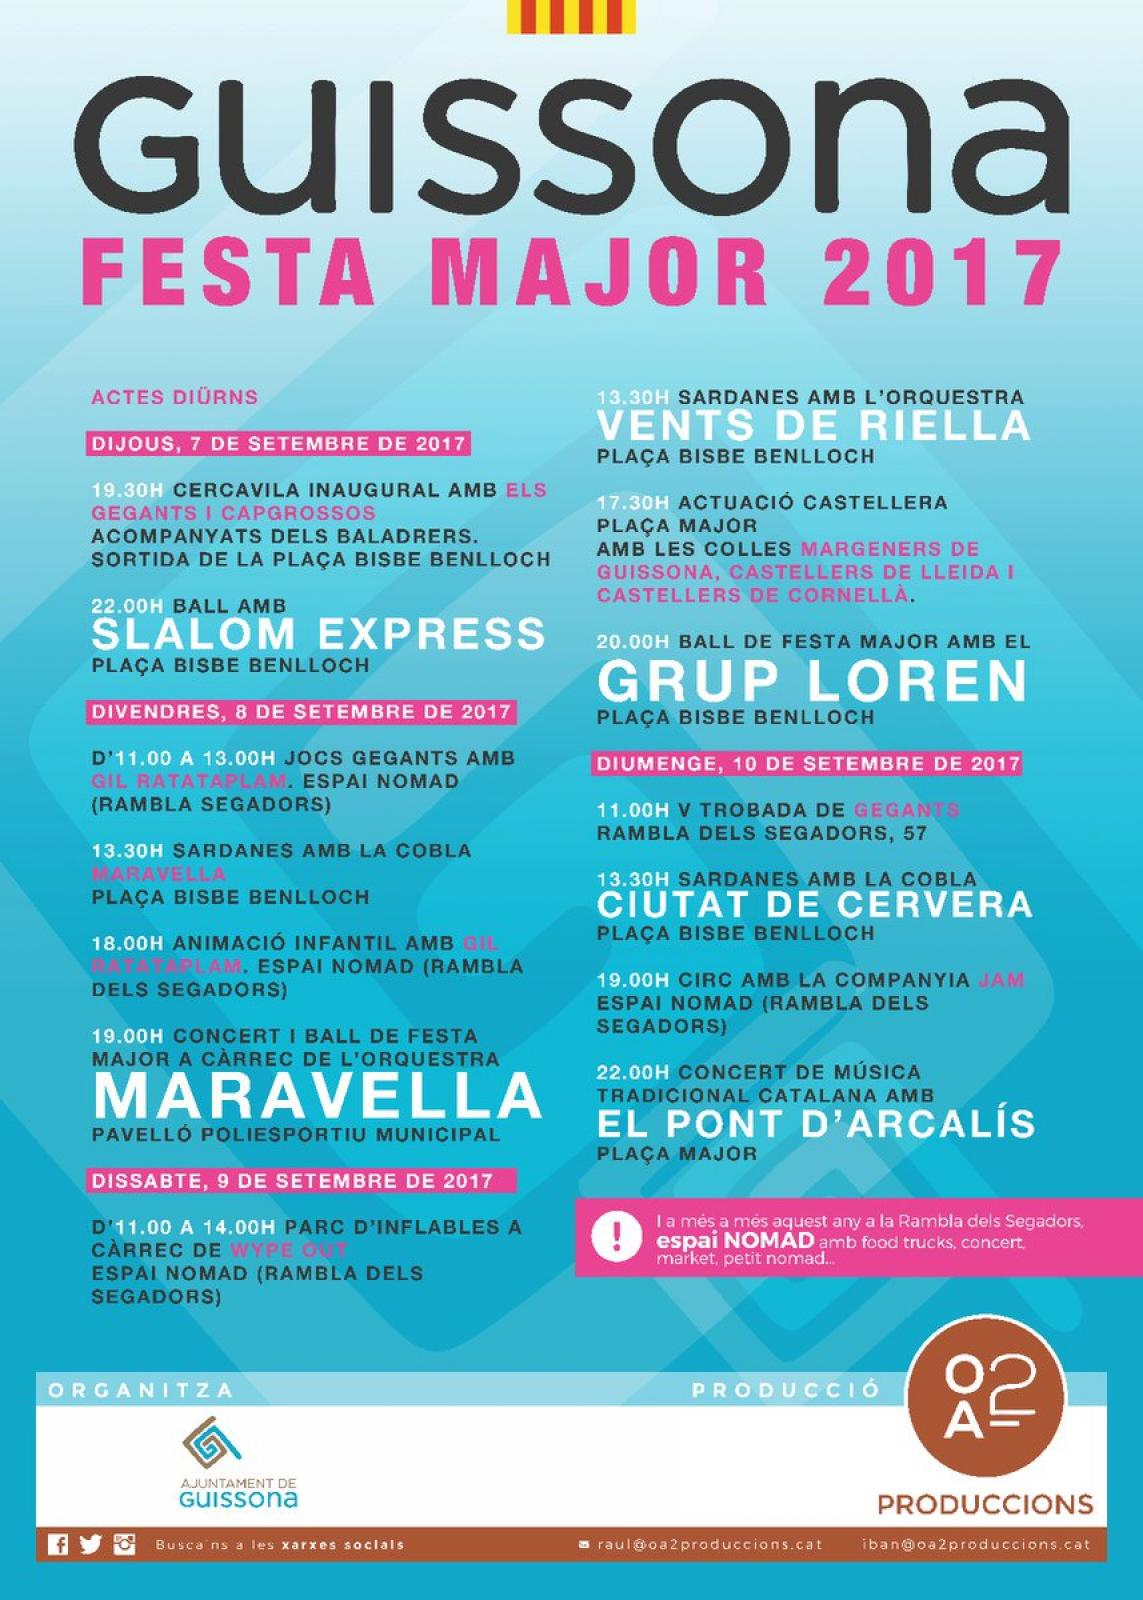 Festa Major de Guissona 2017